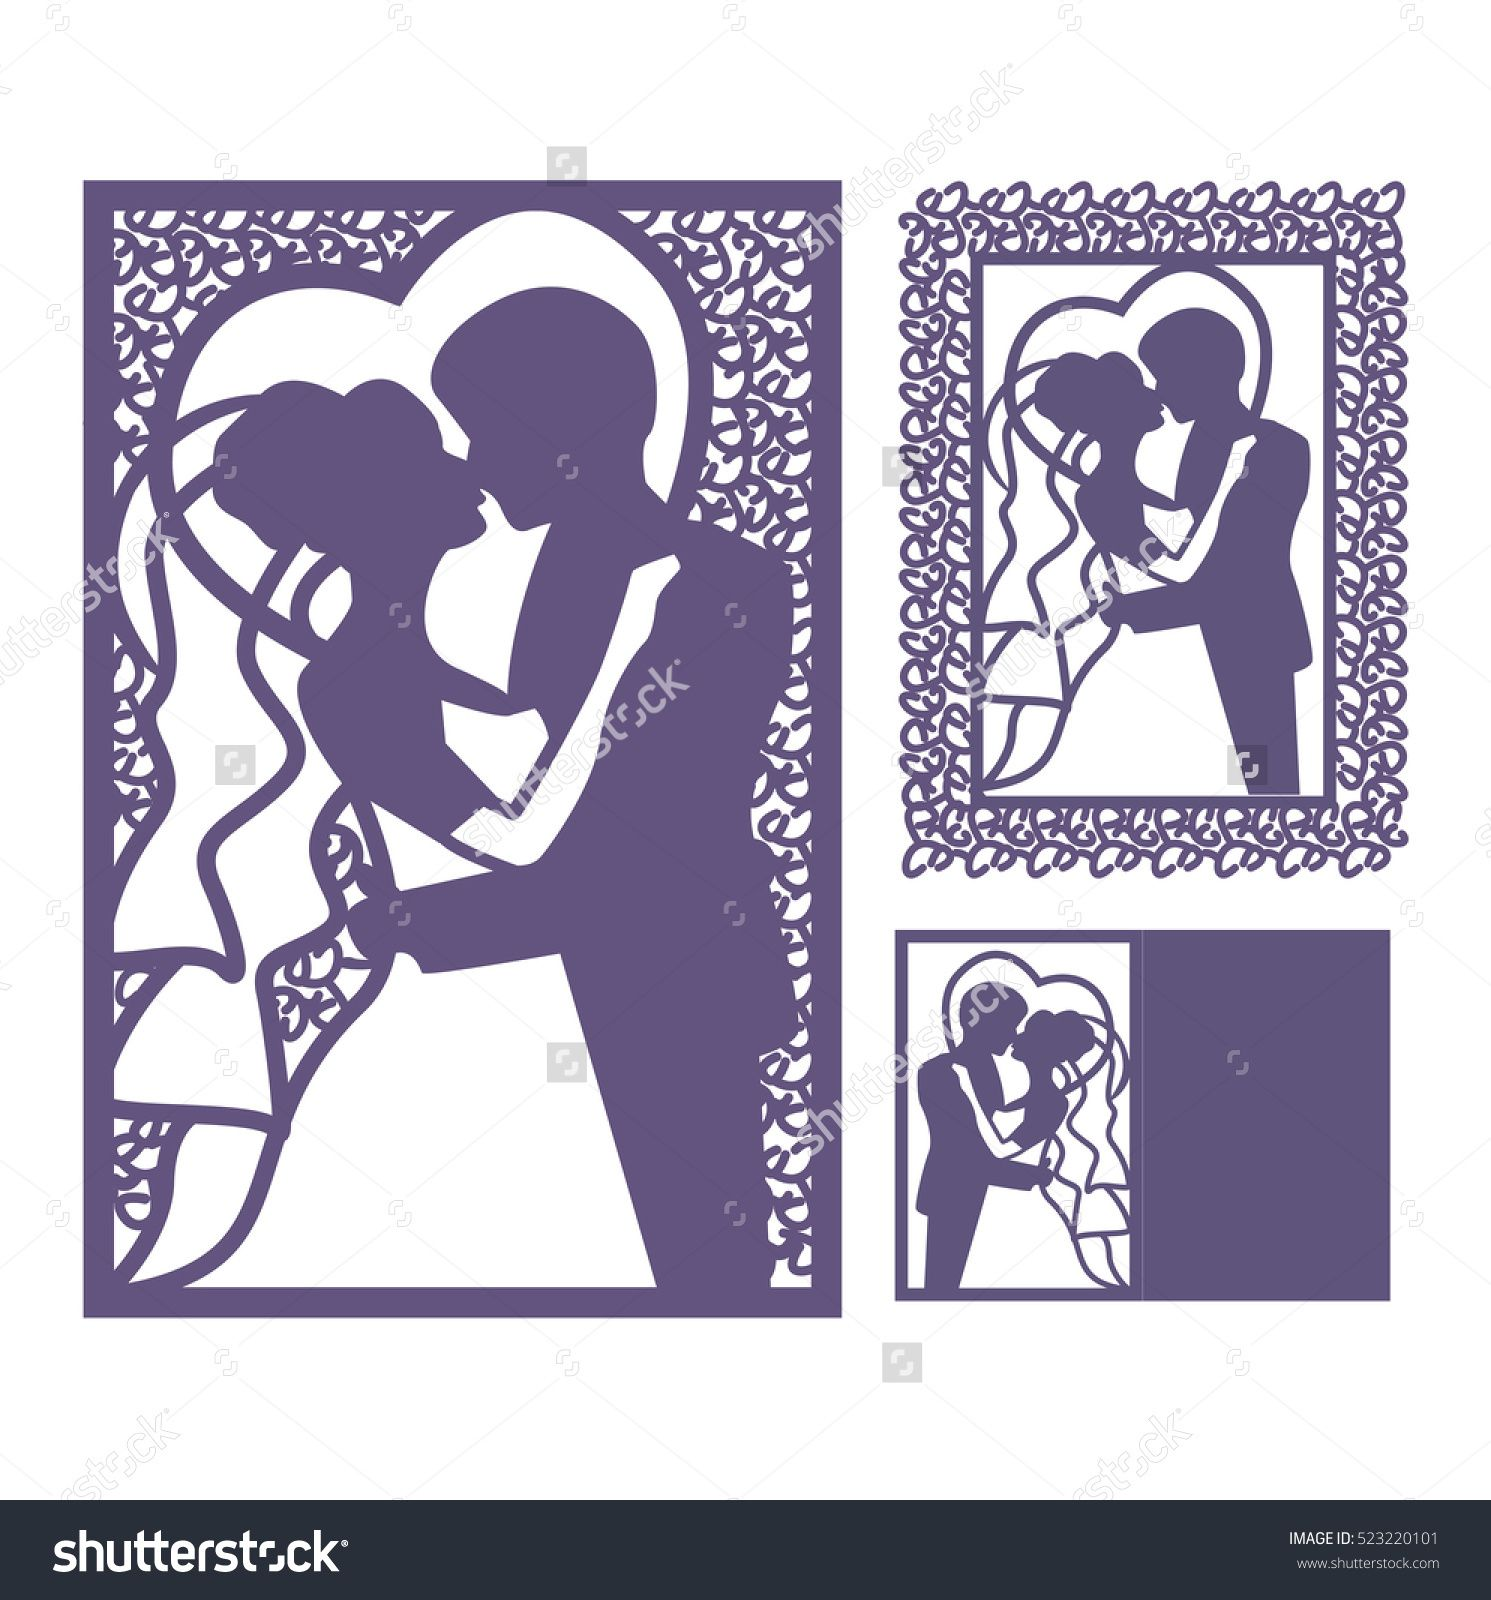 Bride and groom silhouette laser cut invitation vector postcard laser cut invitation vector postcard cutting paper floral motifs stopboris Gallery